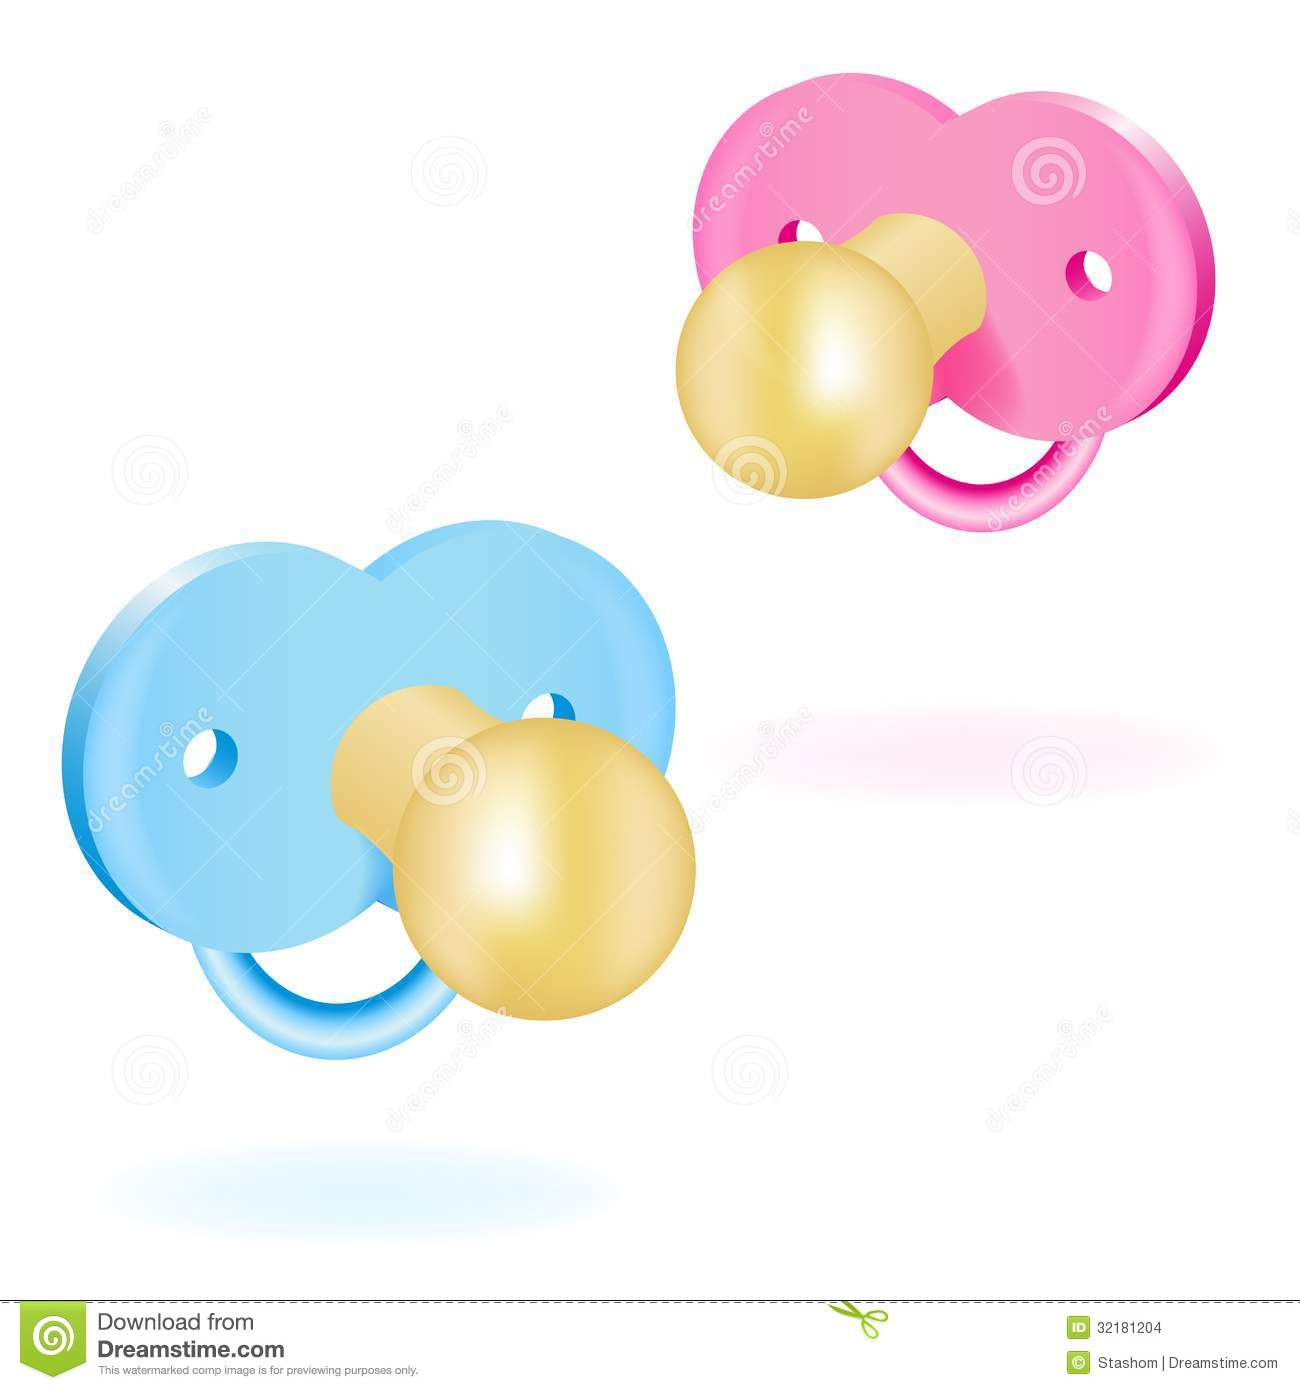 Baby Pacifier Clipart.